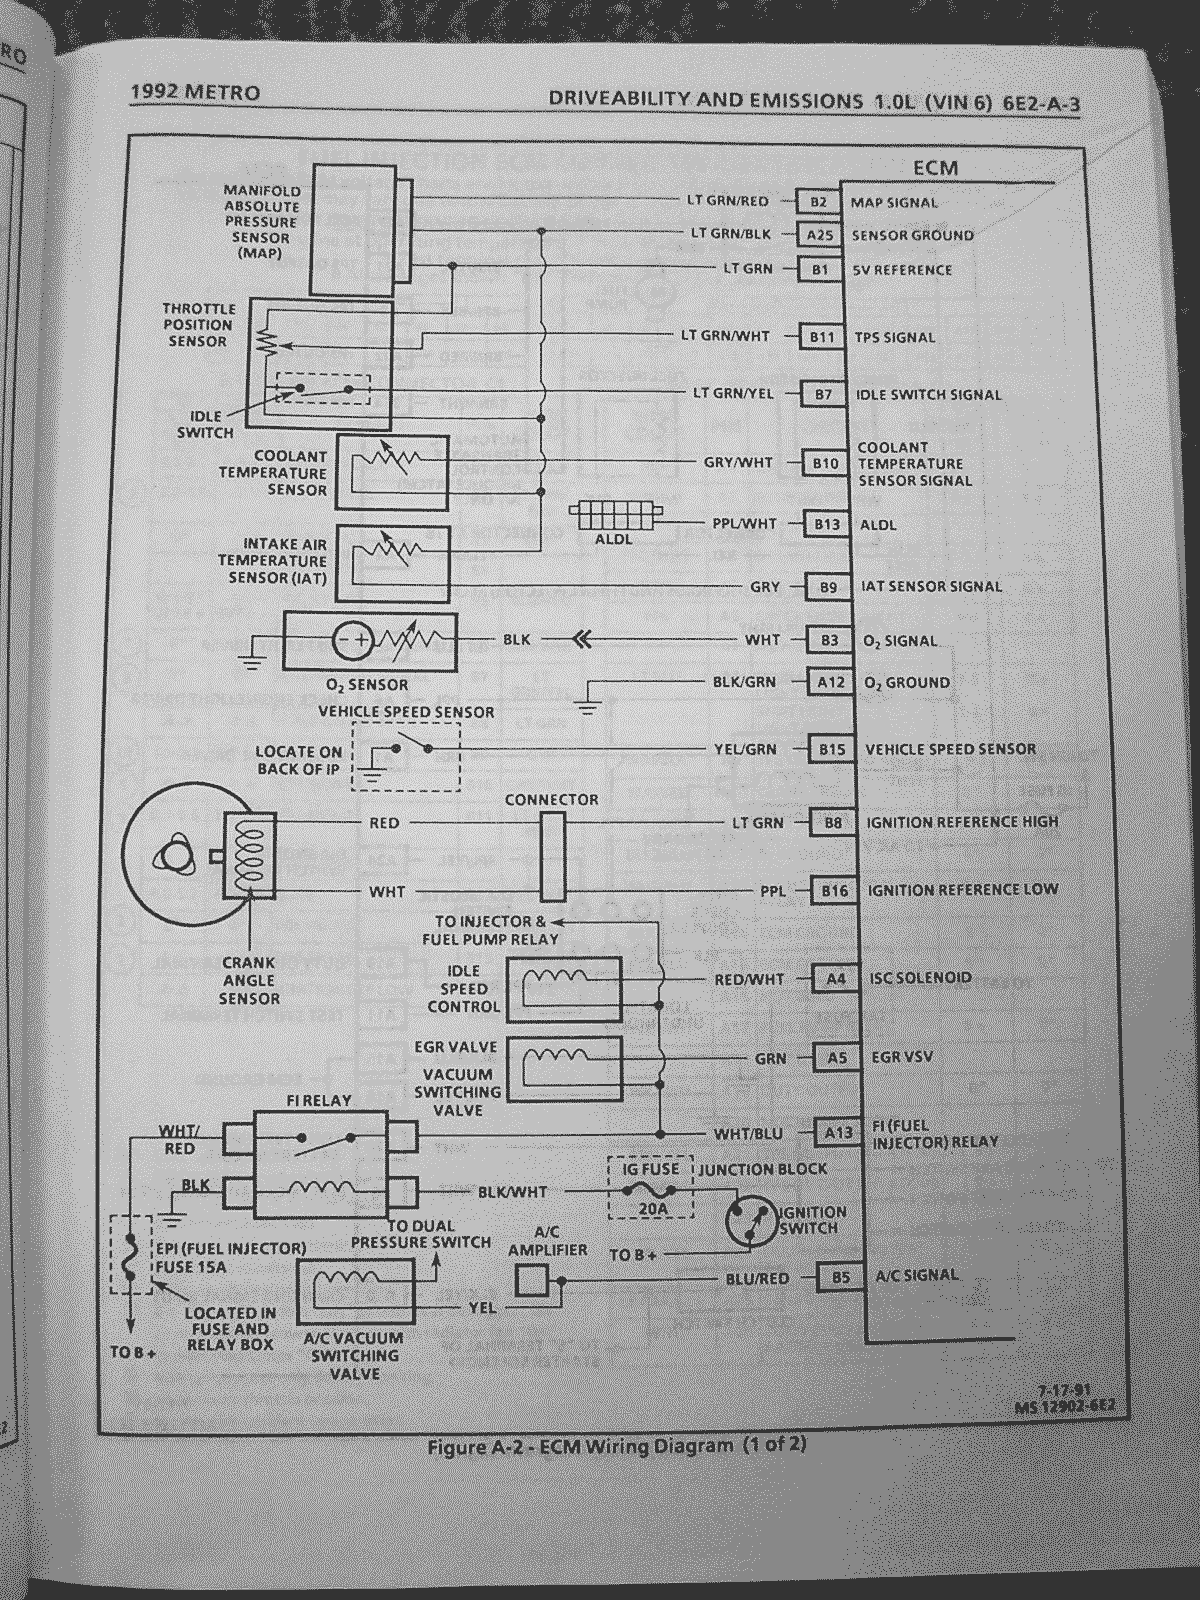 2012 suzuki swift wiring diagram geo metro and suzuki swift wiring diagrams – metroxfi.com